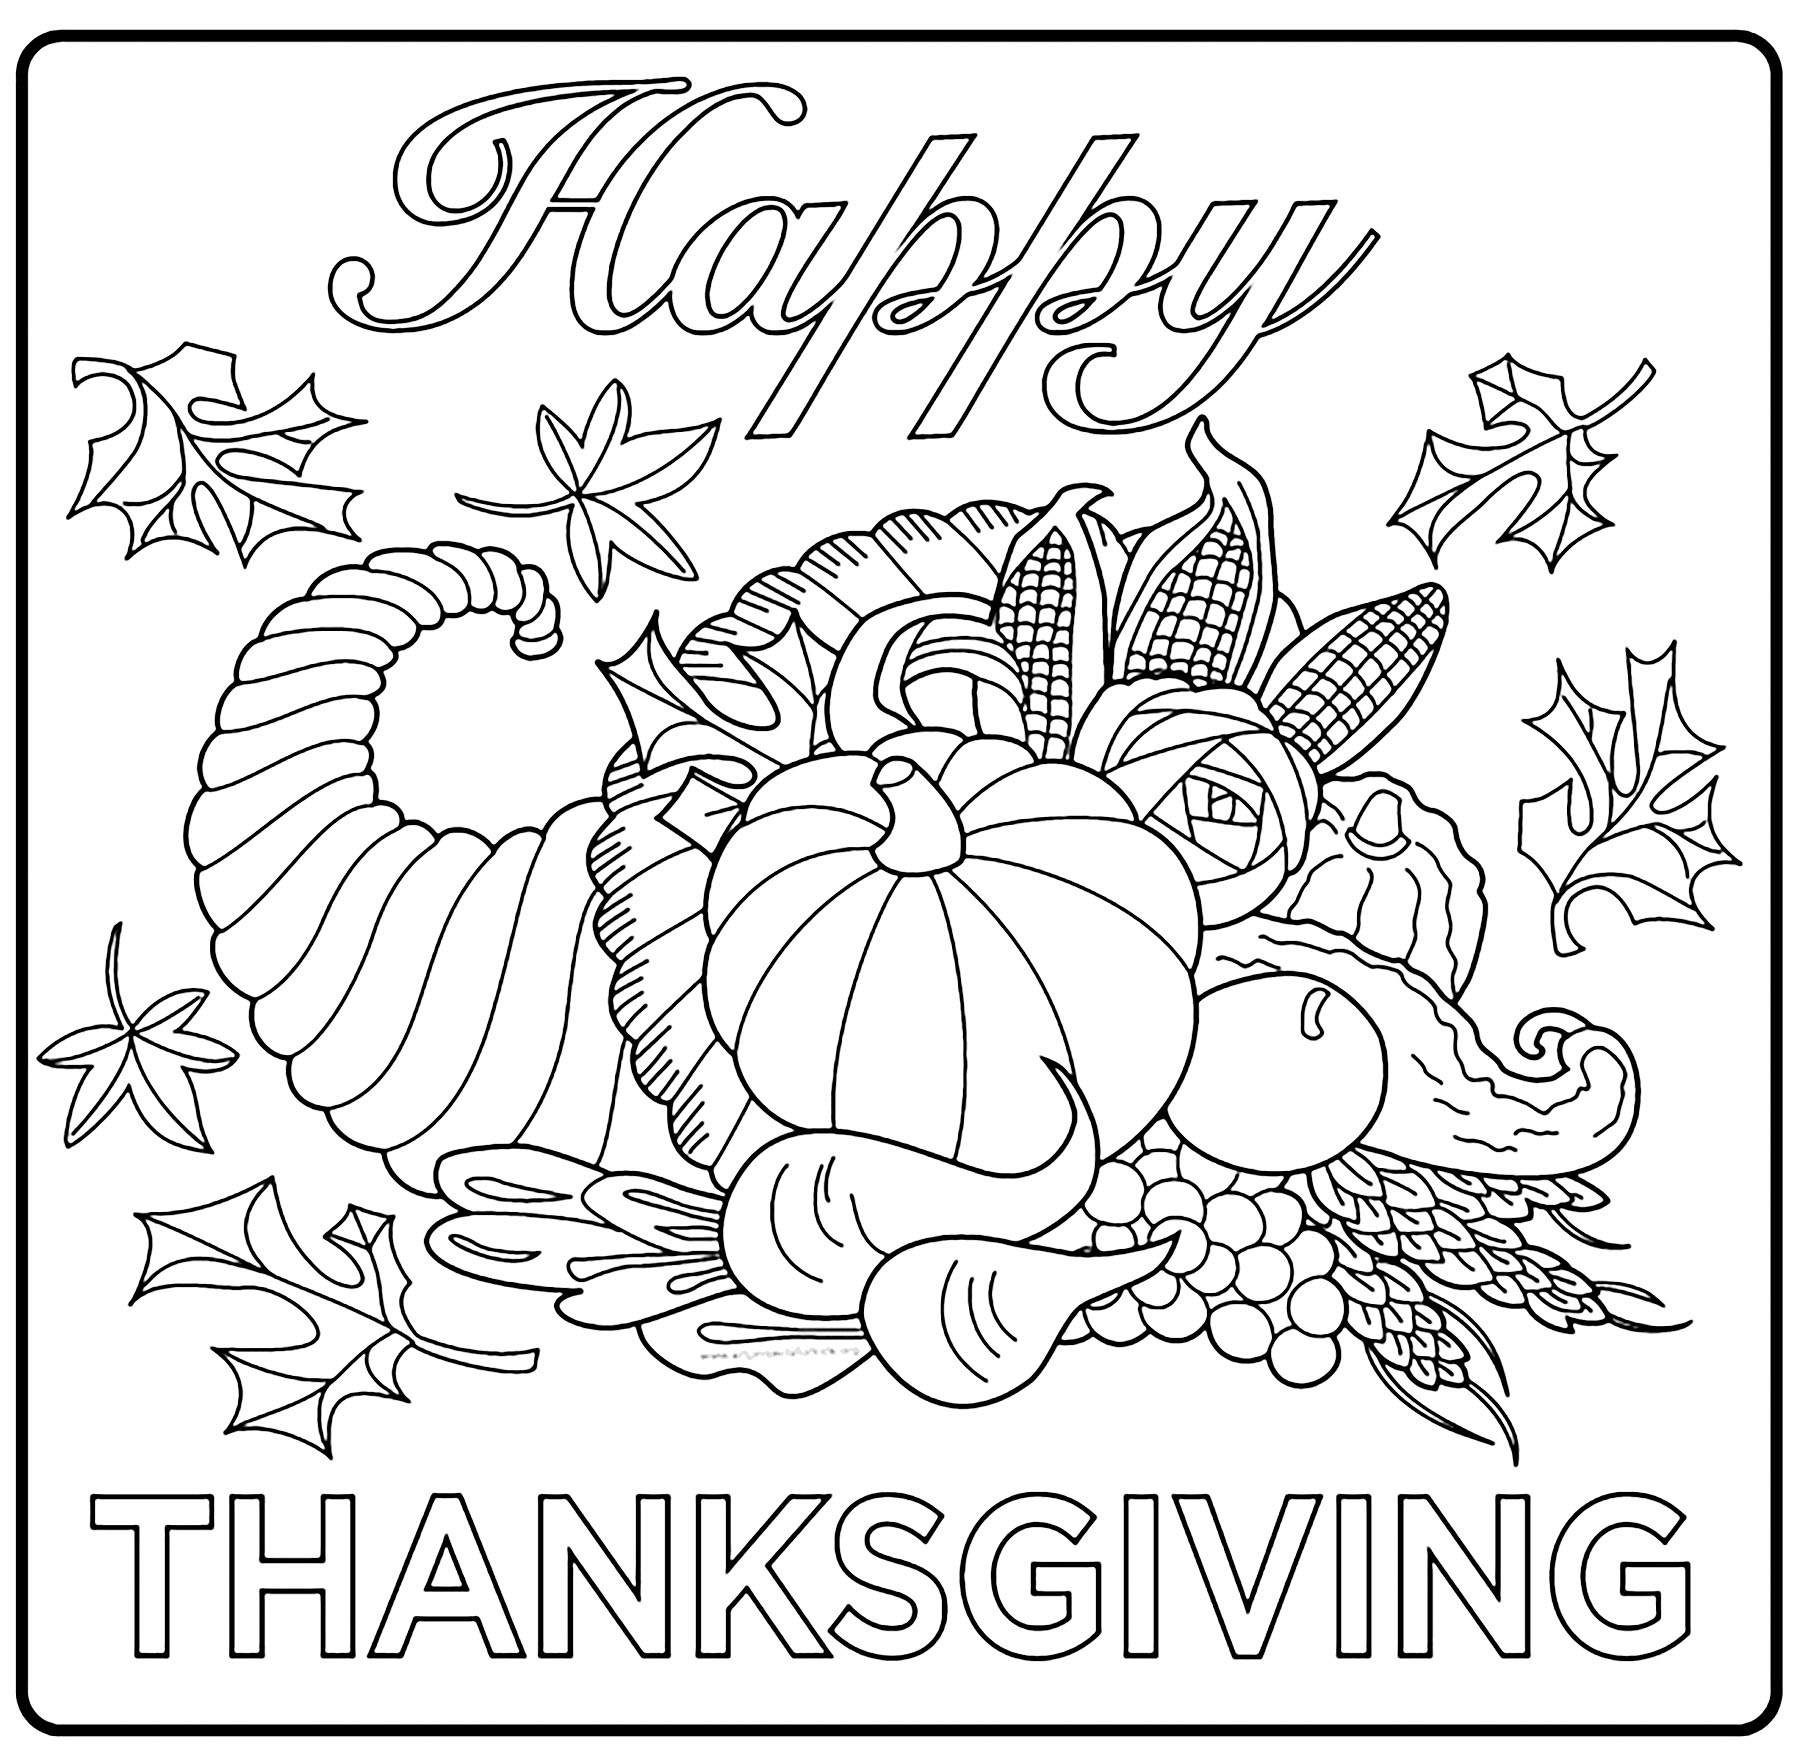 thanksgiving color page thanksgiving for kids thanksgiving kids coloring pages thanksgiving page color